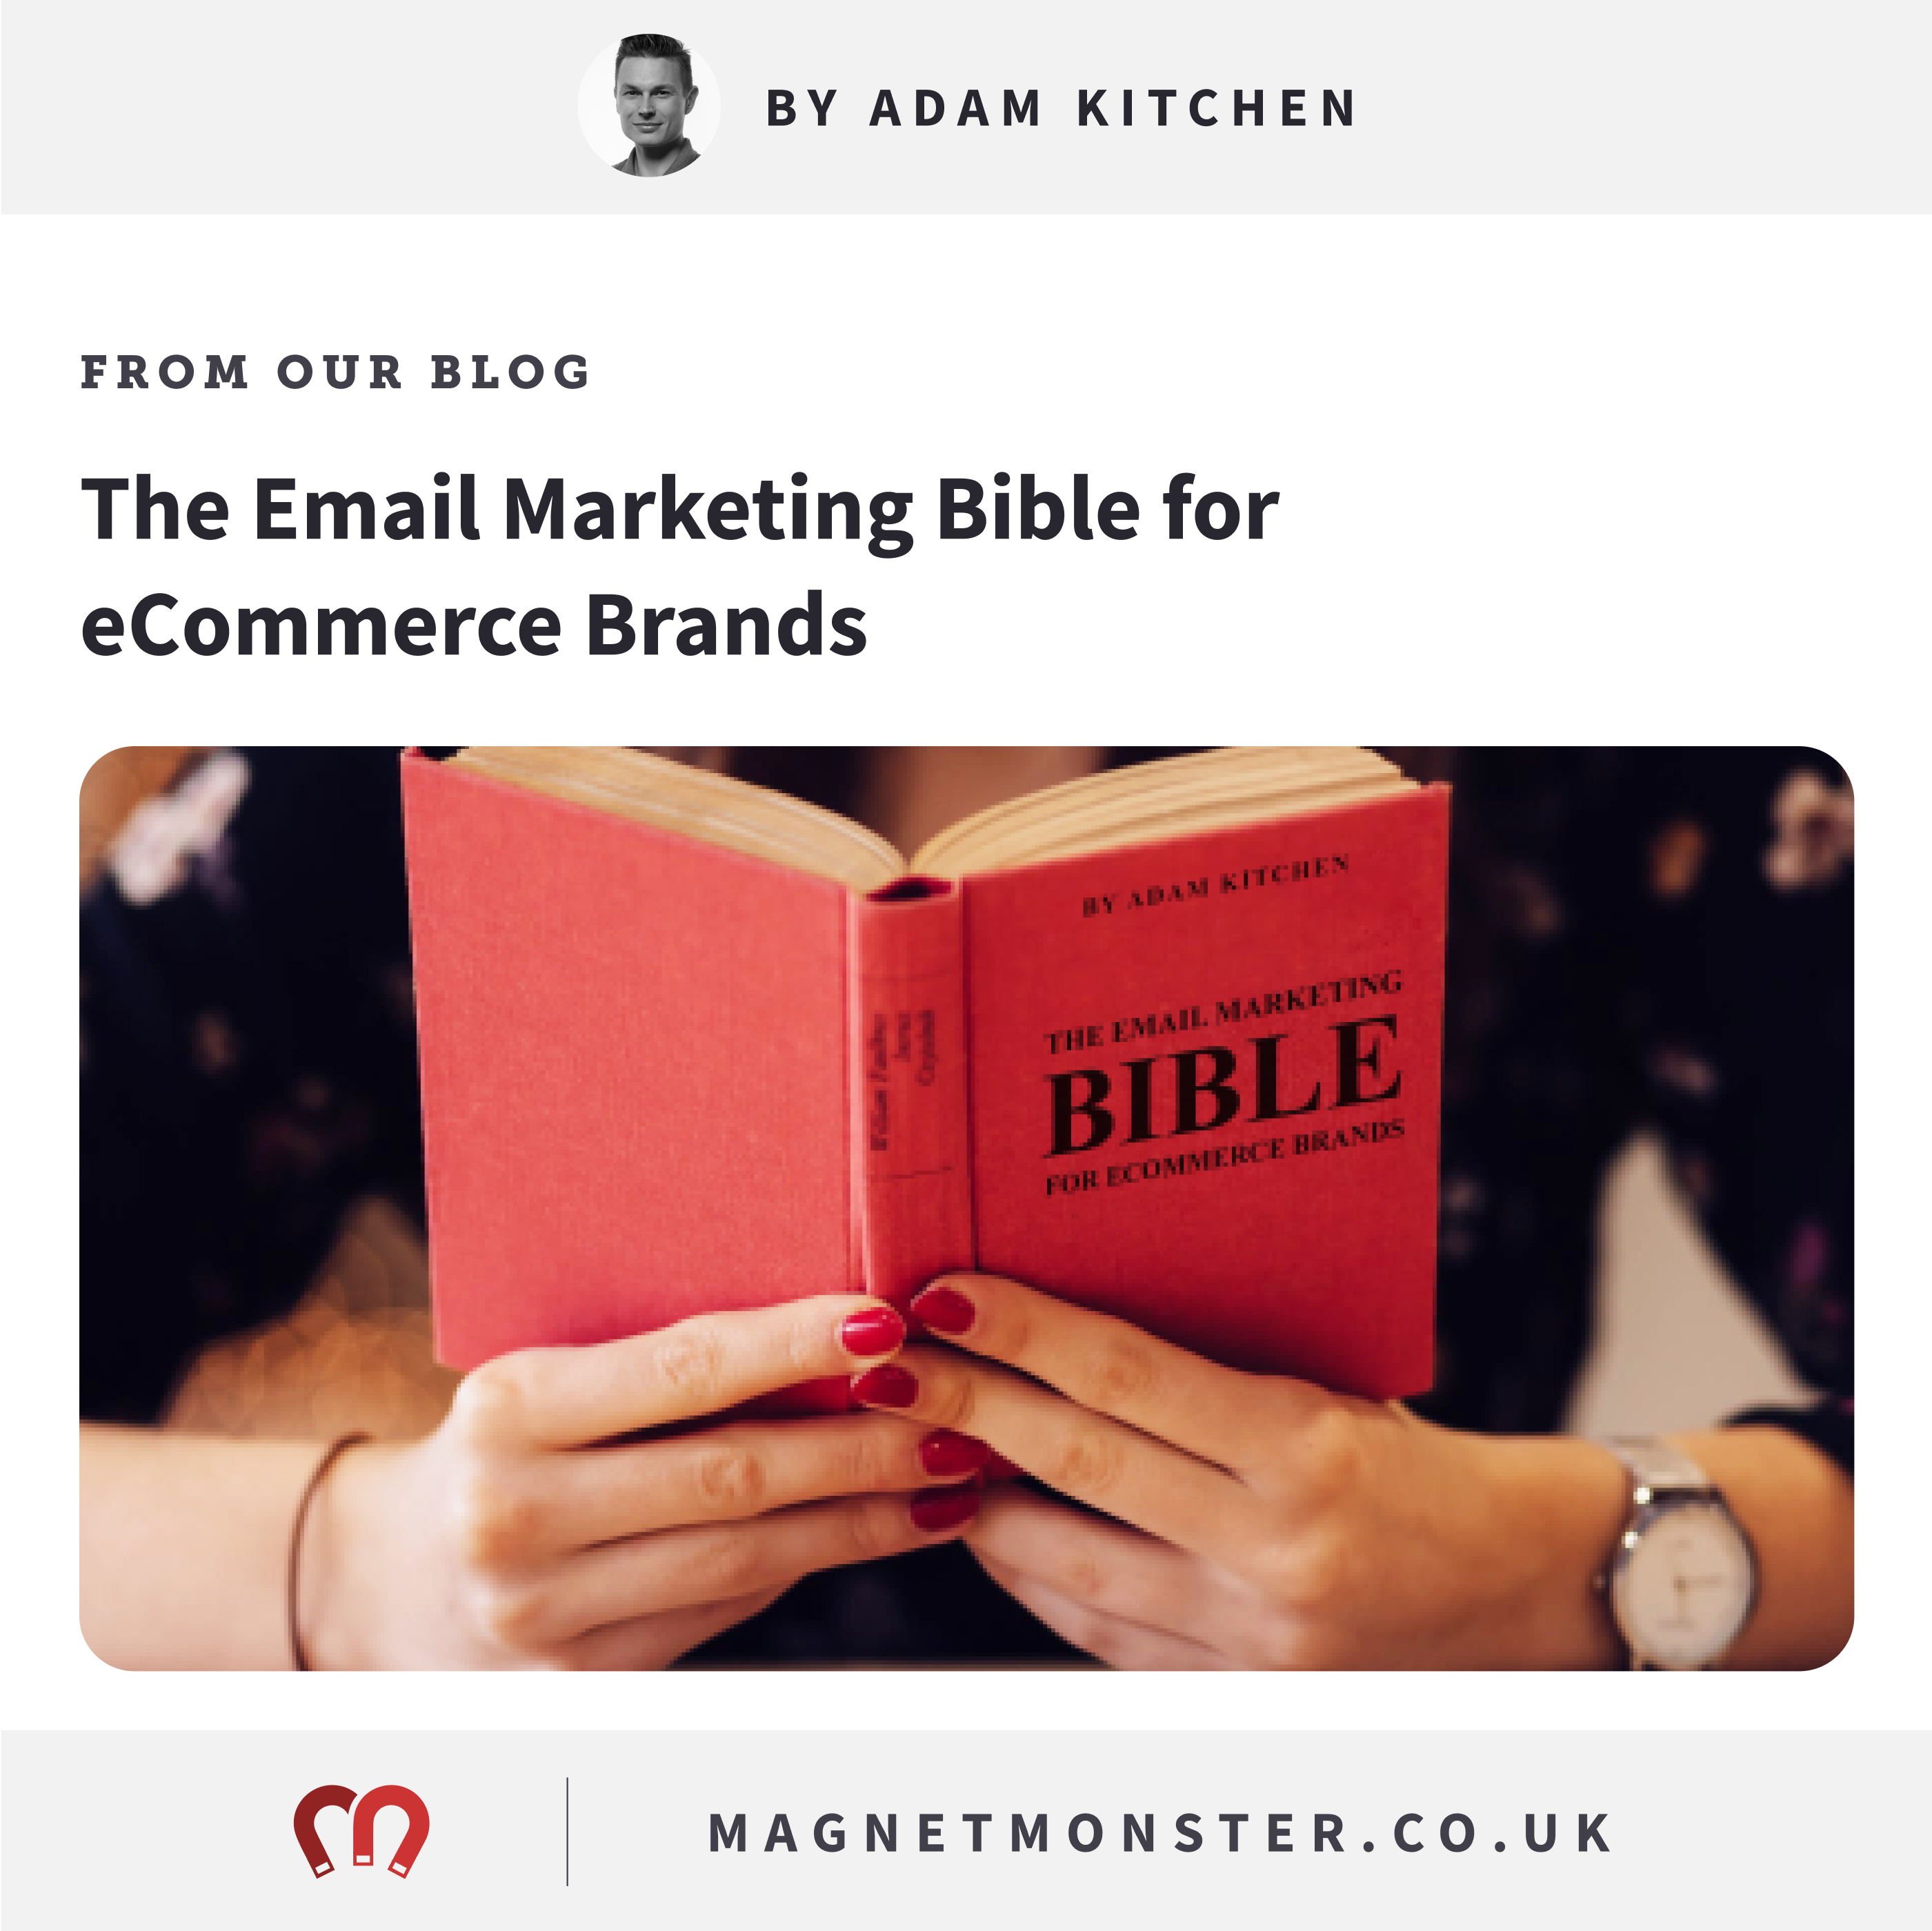 The Email Marketing Bible for eCommerce Brands